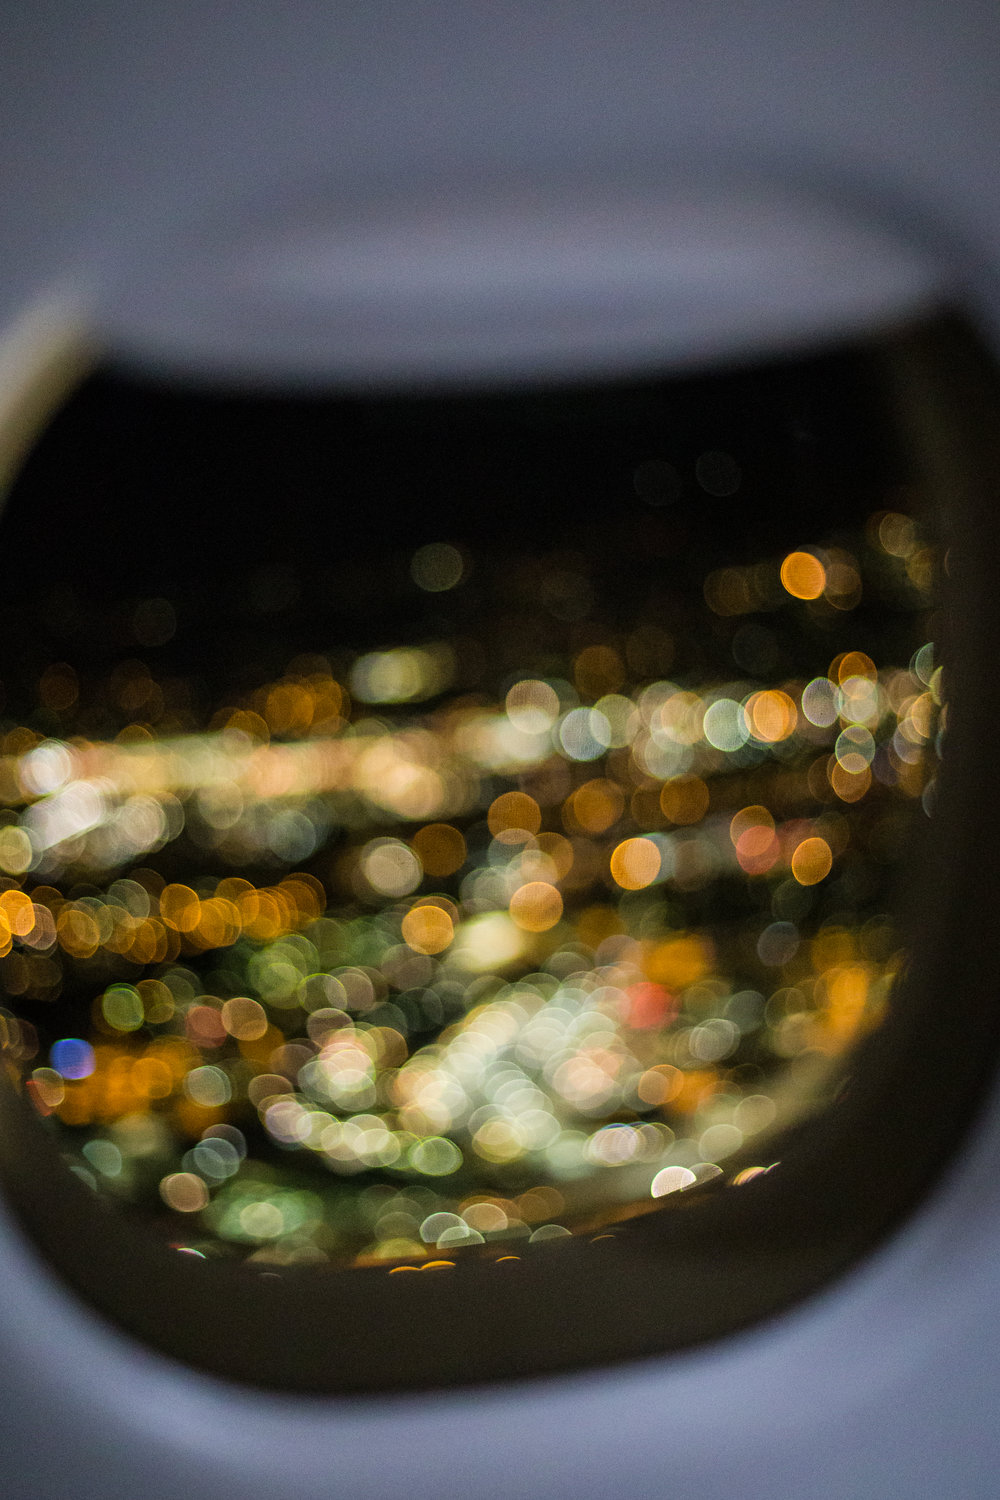 I really don't like flying but I was able to find beauty in these out of focus city lights. A beautiful distraction.